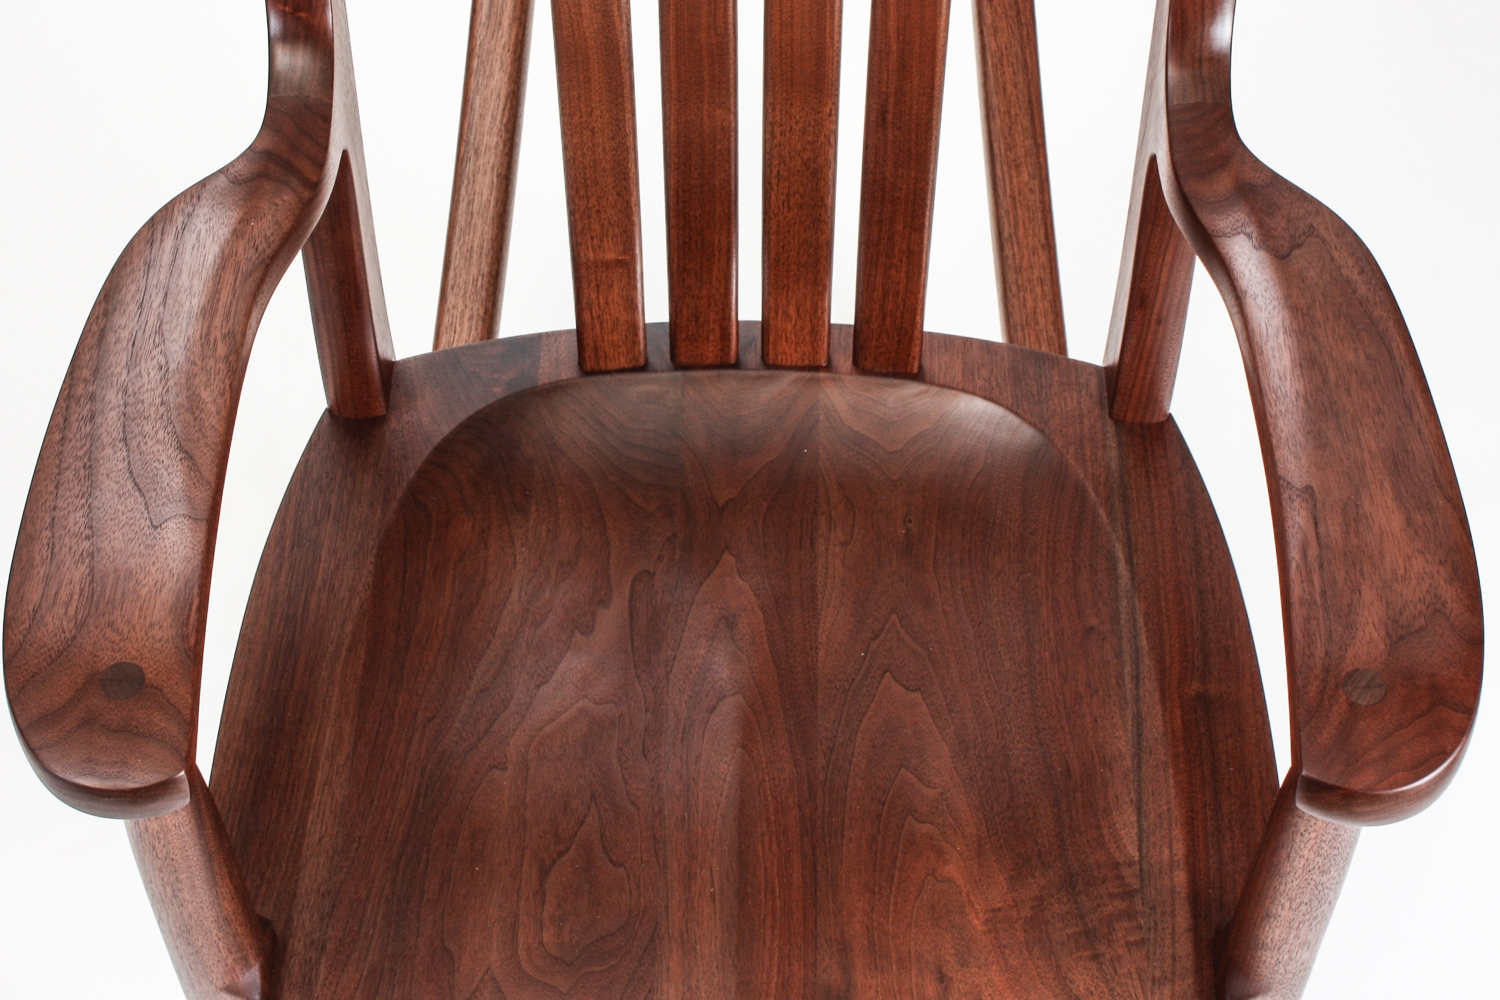 Walnut Rocking Chairs | Comfortable, Handmade, Heirloom For Dark Walnut Rocking Chairs (View 9 of 20)